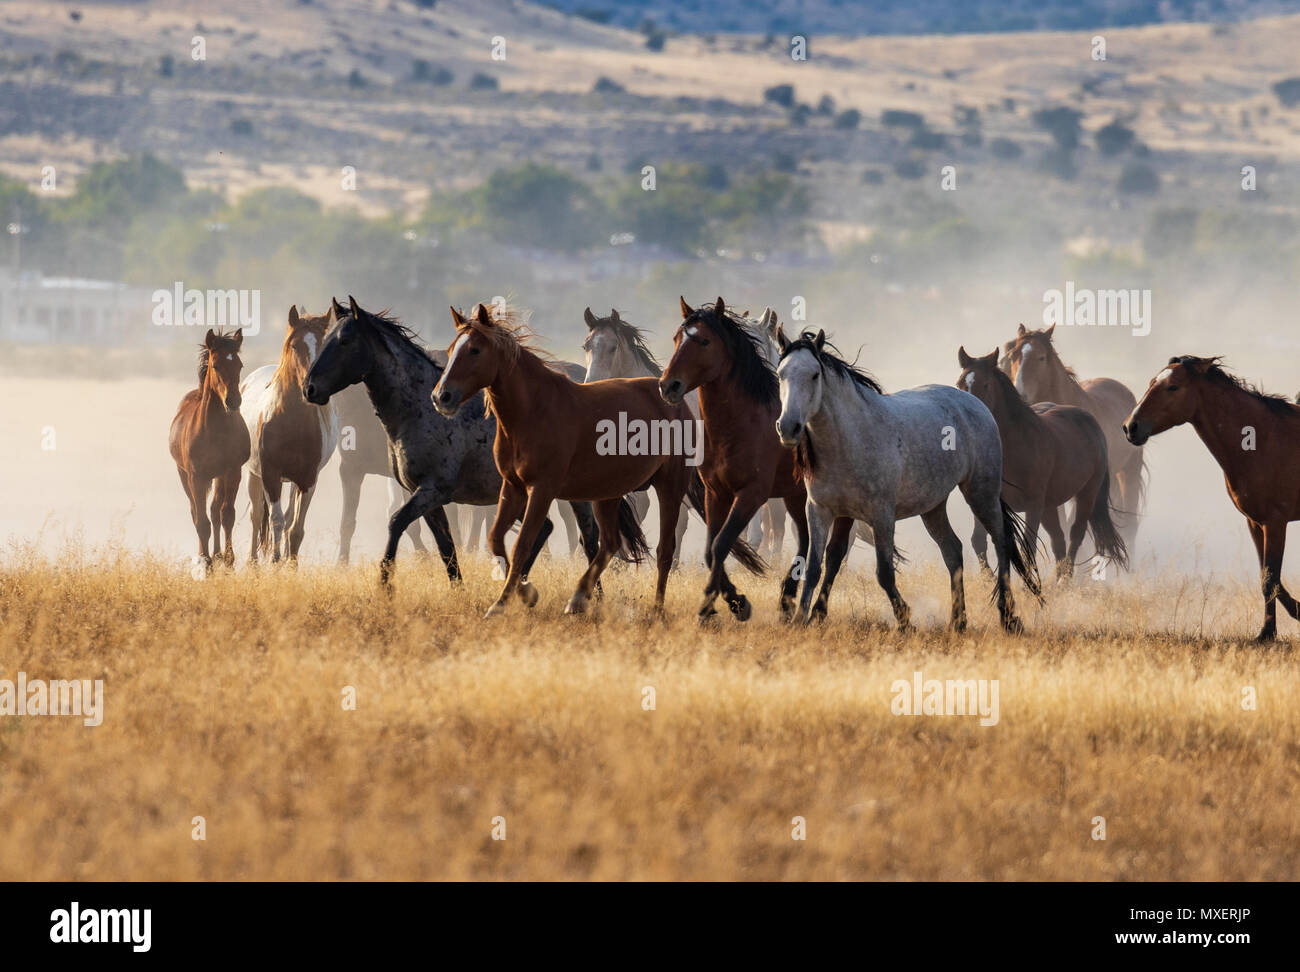 Wild Horses High Resolution Stock Photography And Images Alamy